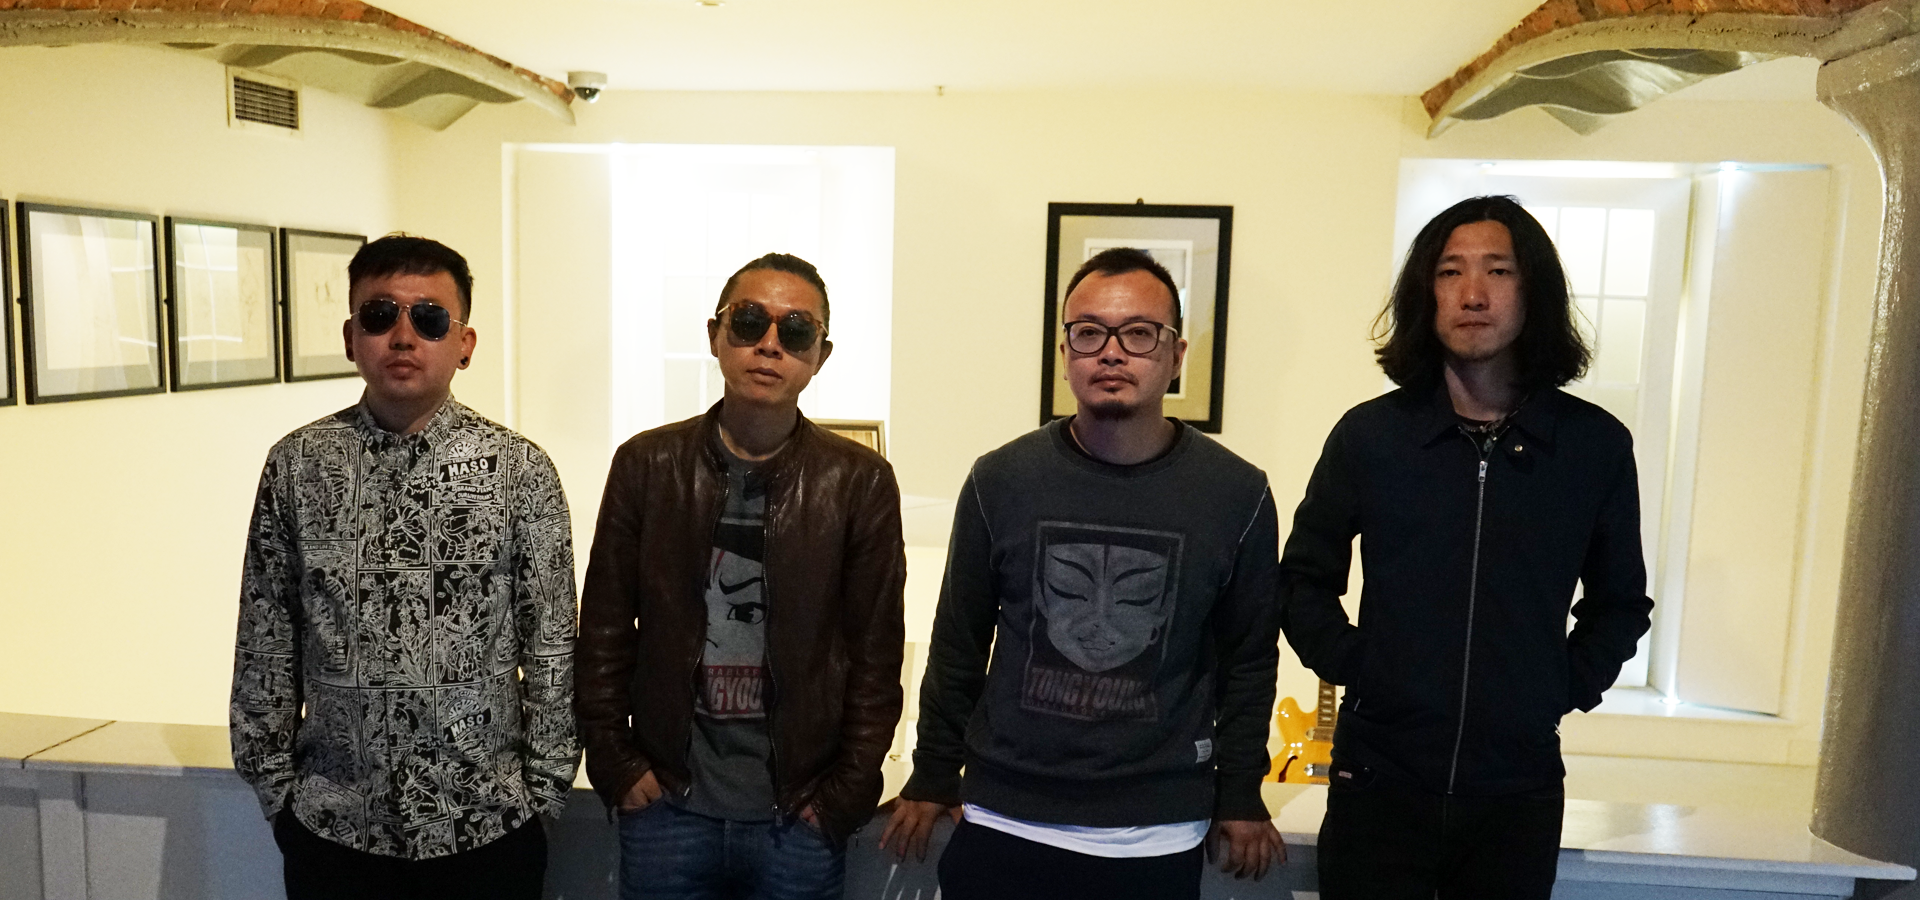 Miserable Faith: Chinese rock band visit Liverpool